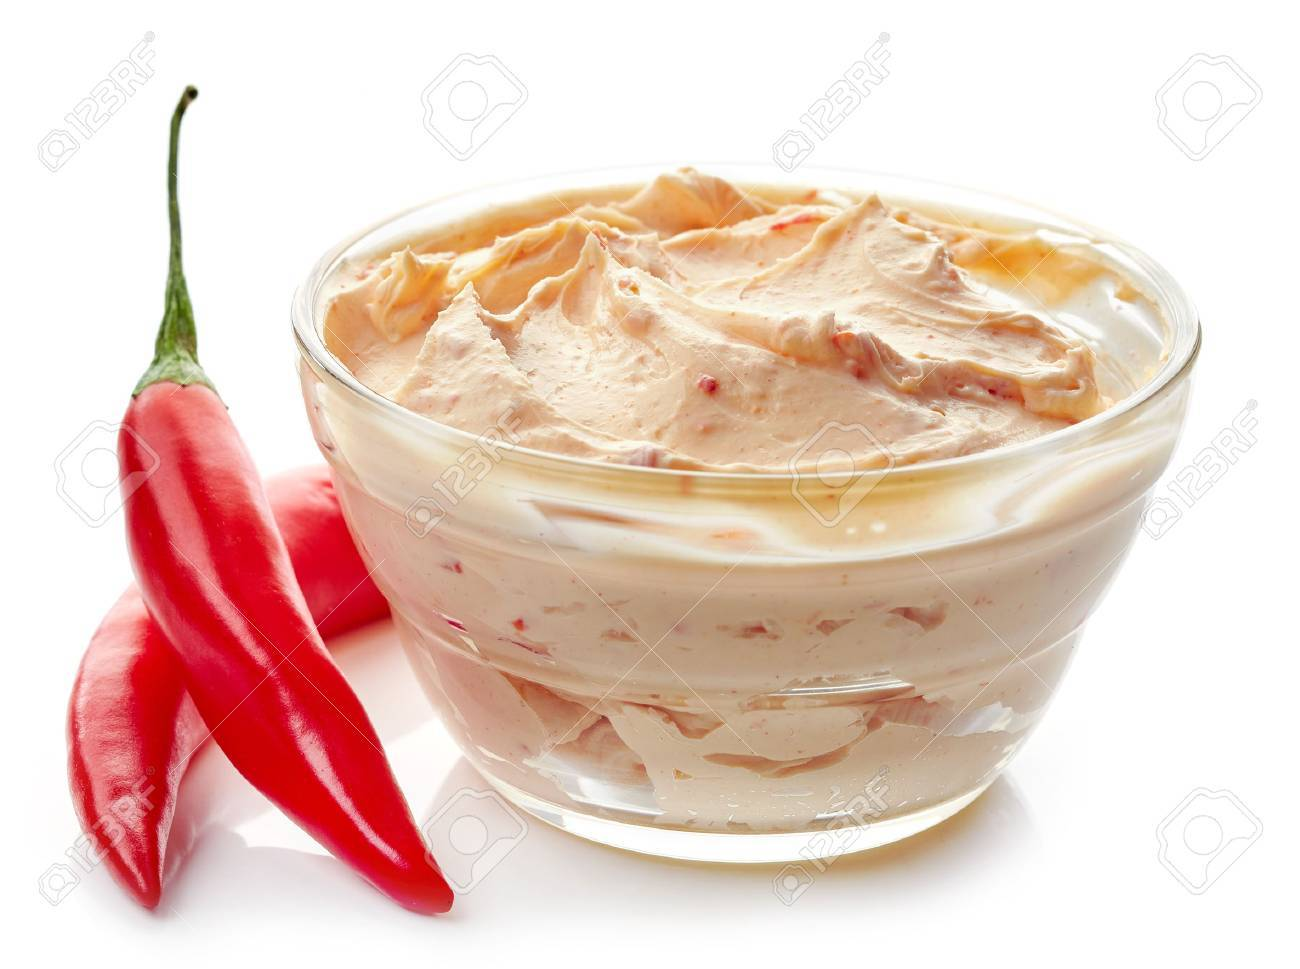 Chili Bilder bowl of cheese with chili and tomato dip sauce isolated on